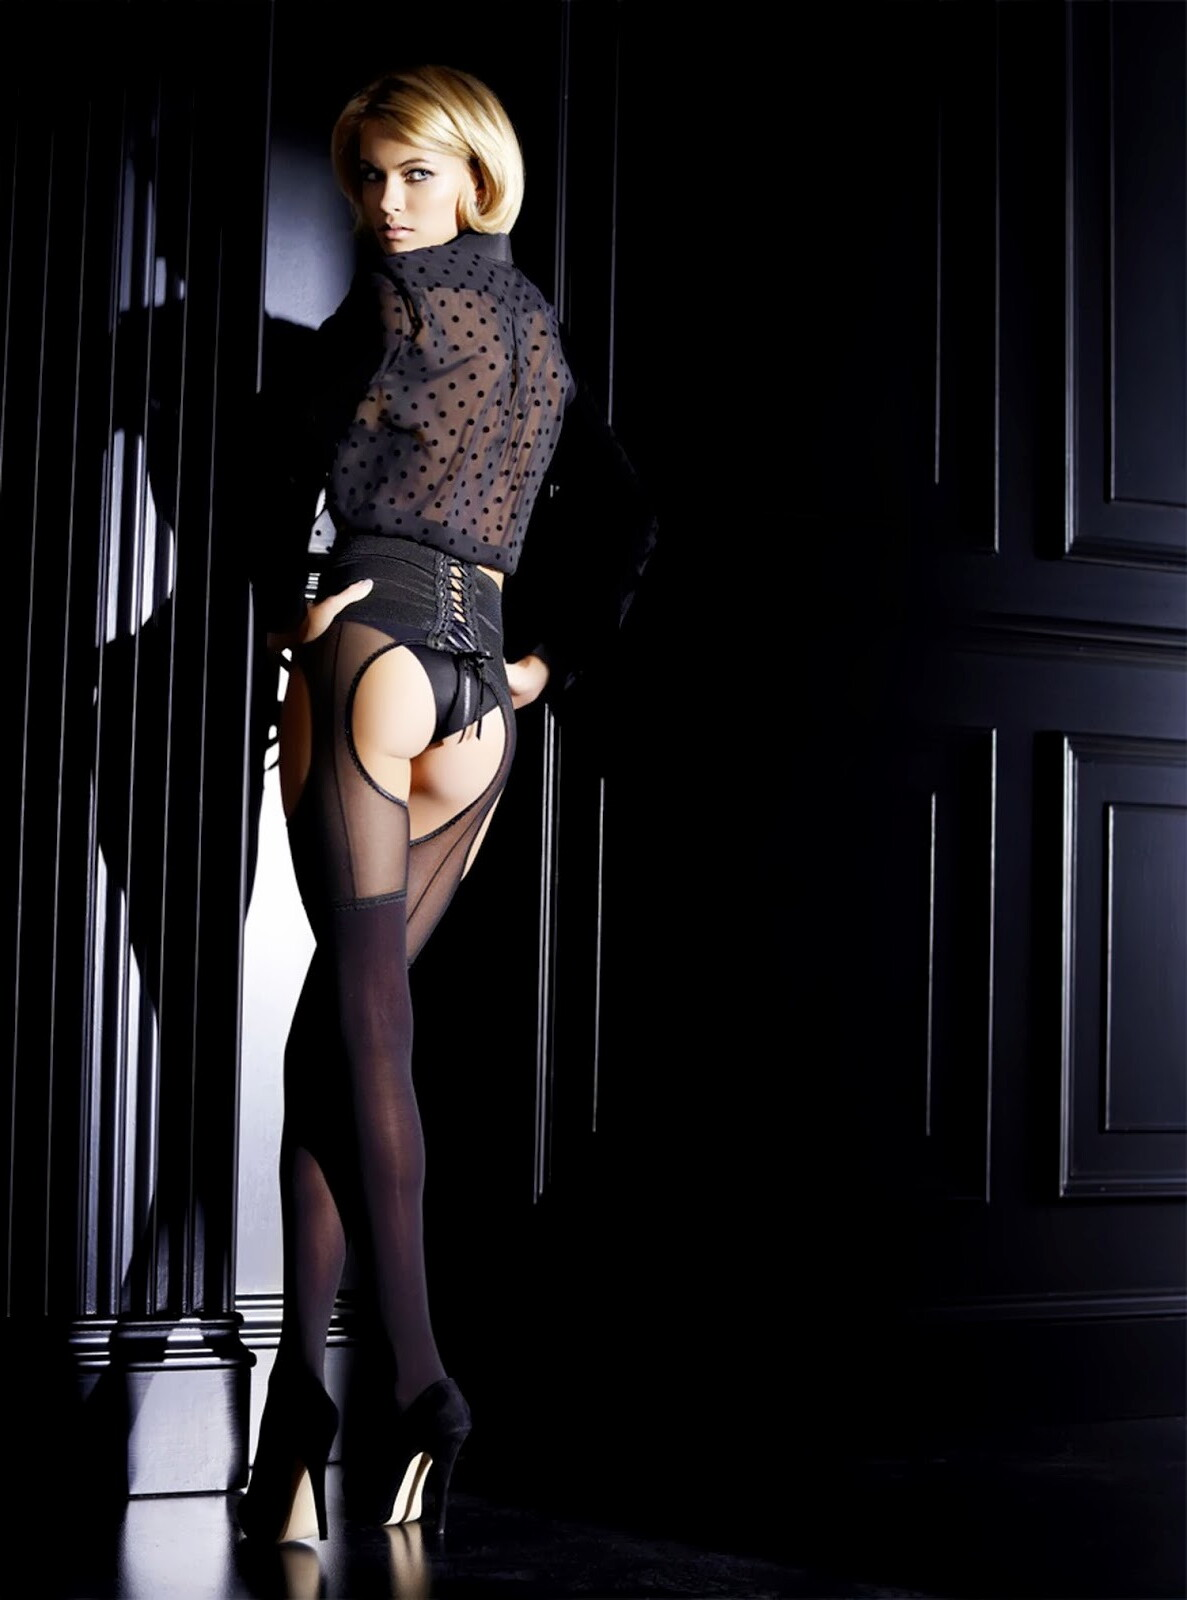 milf stockings pictures and sexy asians in stockings